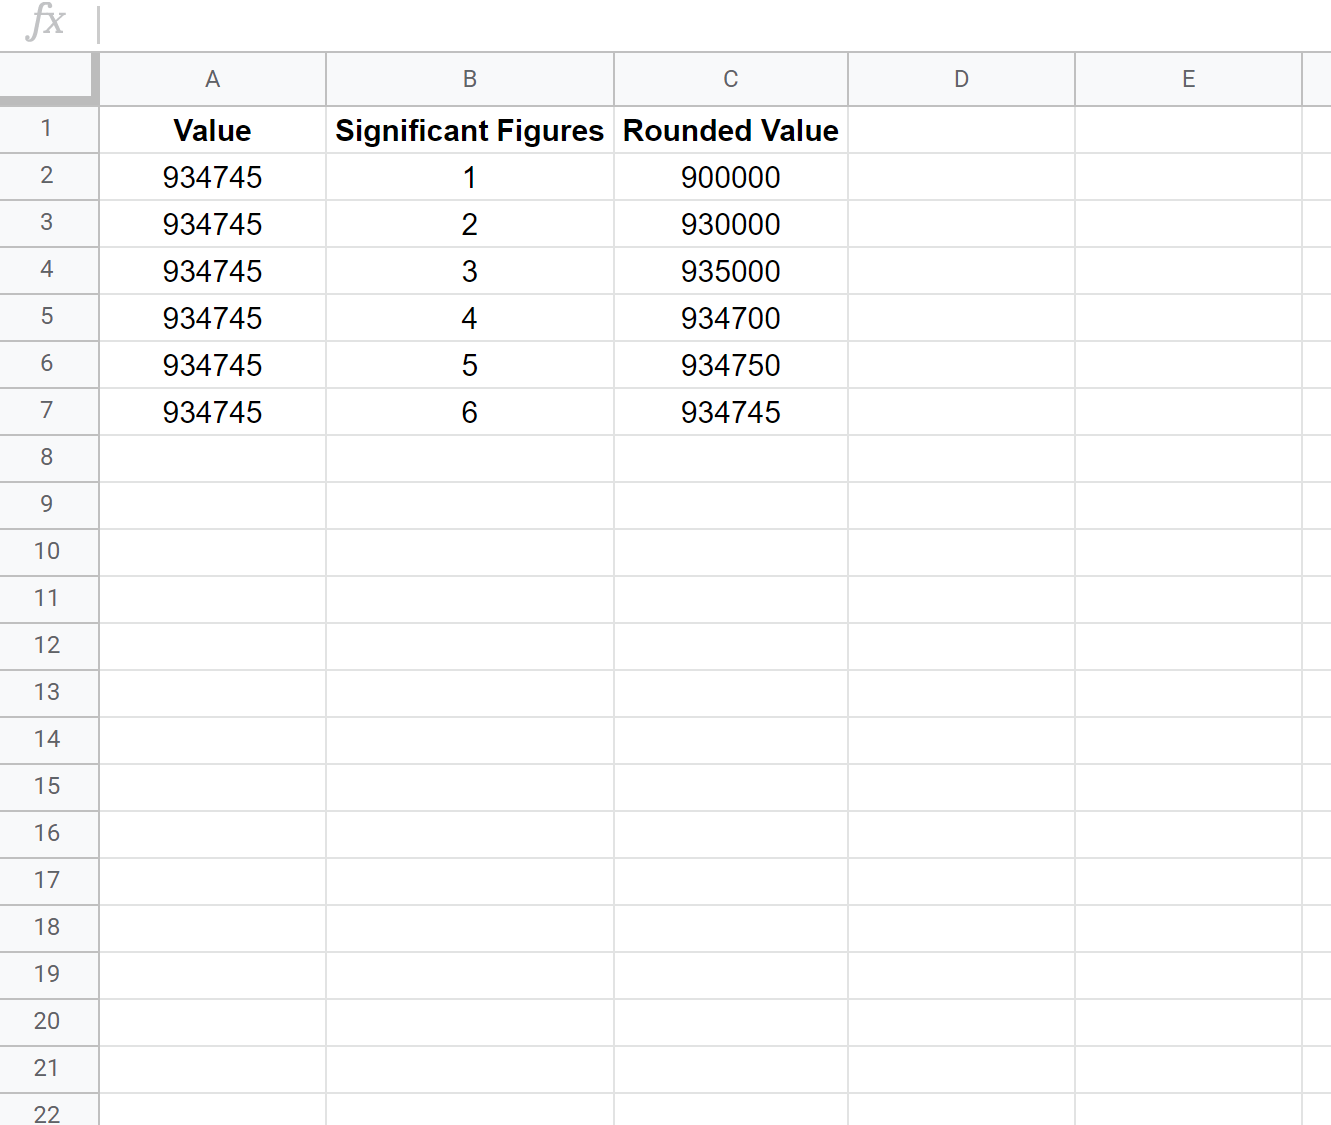 Rounding to significant figures in Google Sheets